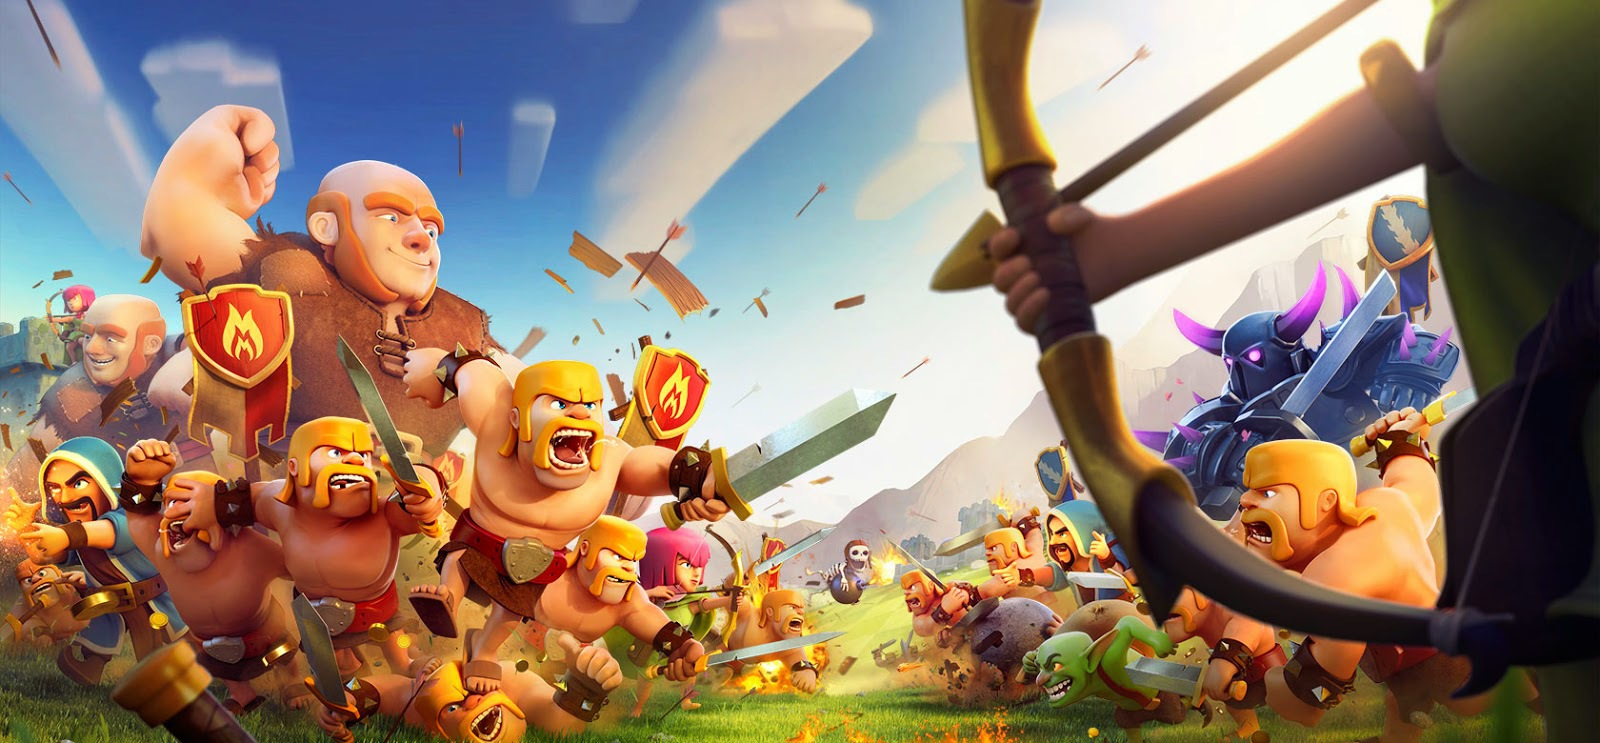 Barbarian Clash Of Clans Hd Hd Games 4k Wallpapers: Clash Of Clans Wallpapers Images Photos Pictures Backgrounds